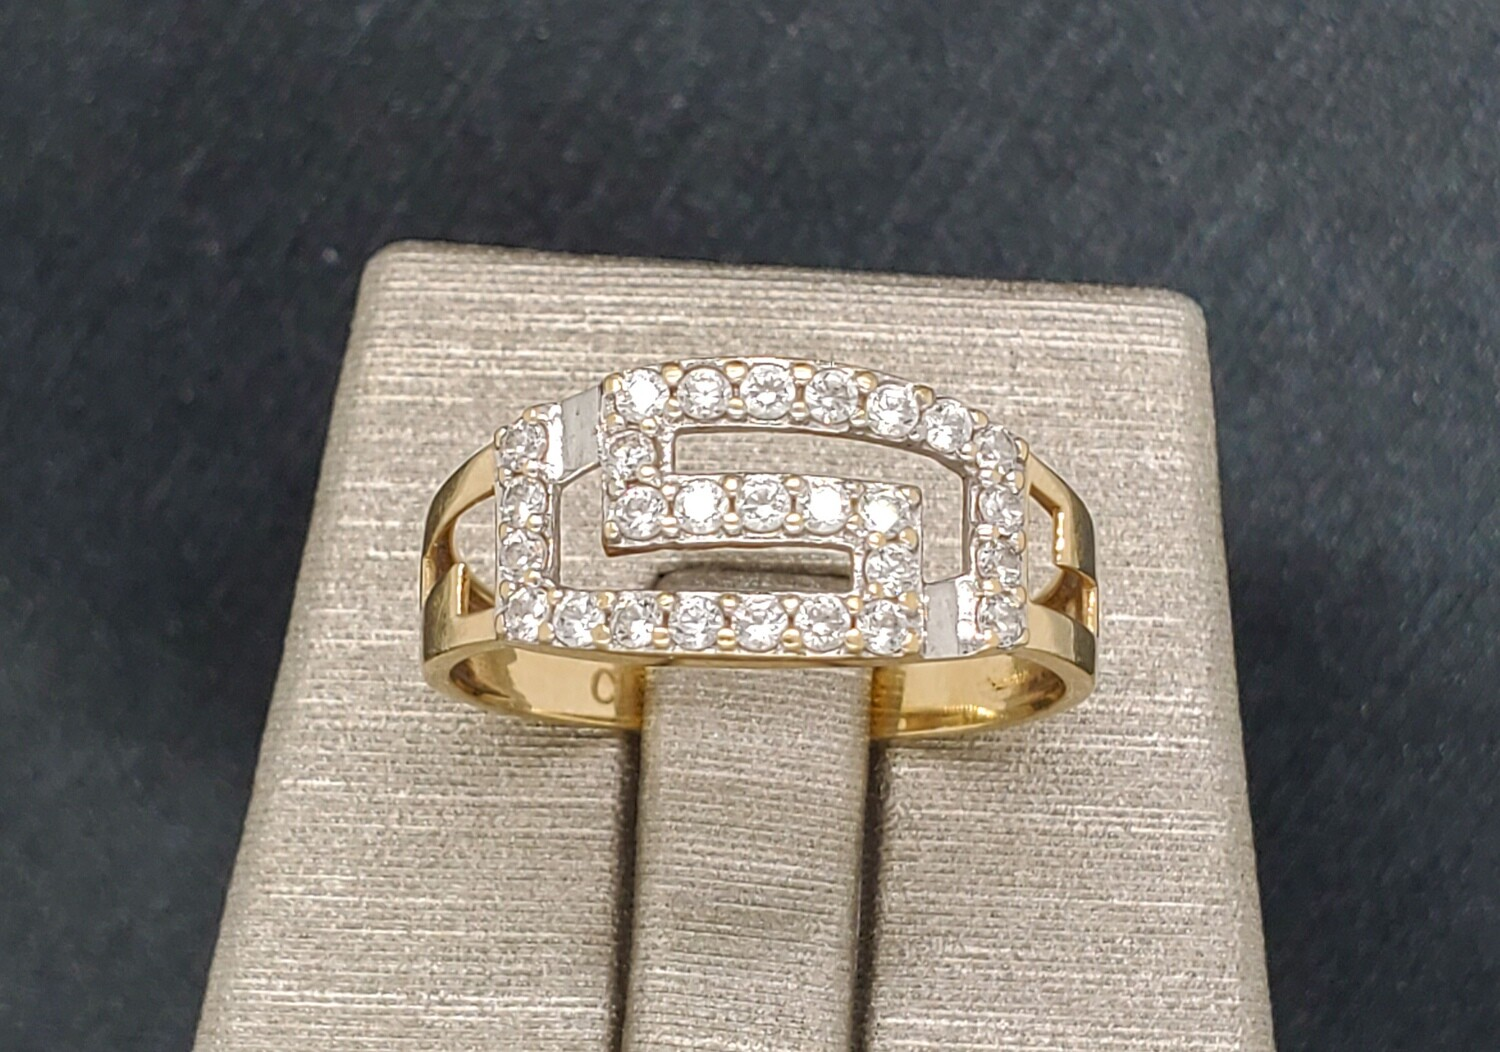 880-2103R02 Greek Diamond Ring Size 7.5 10k YG